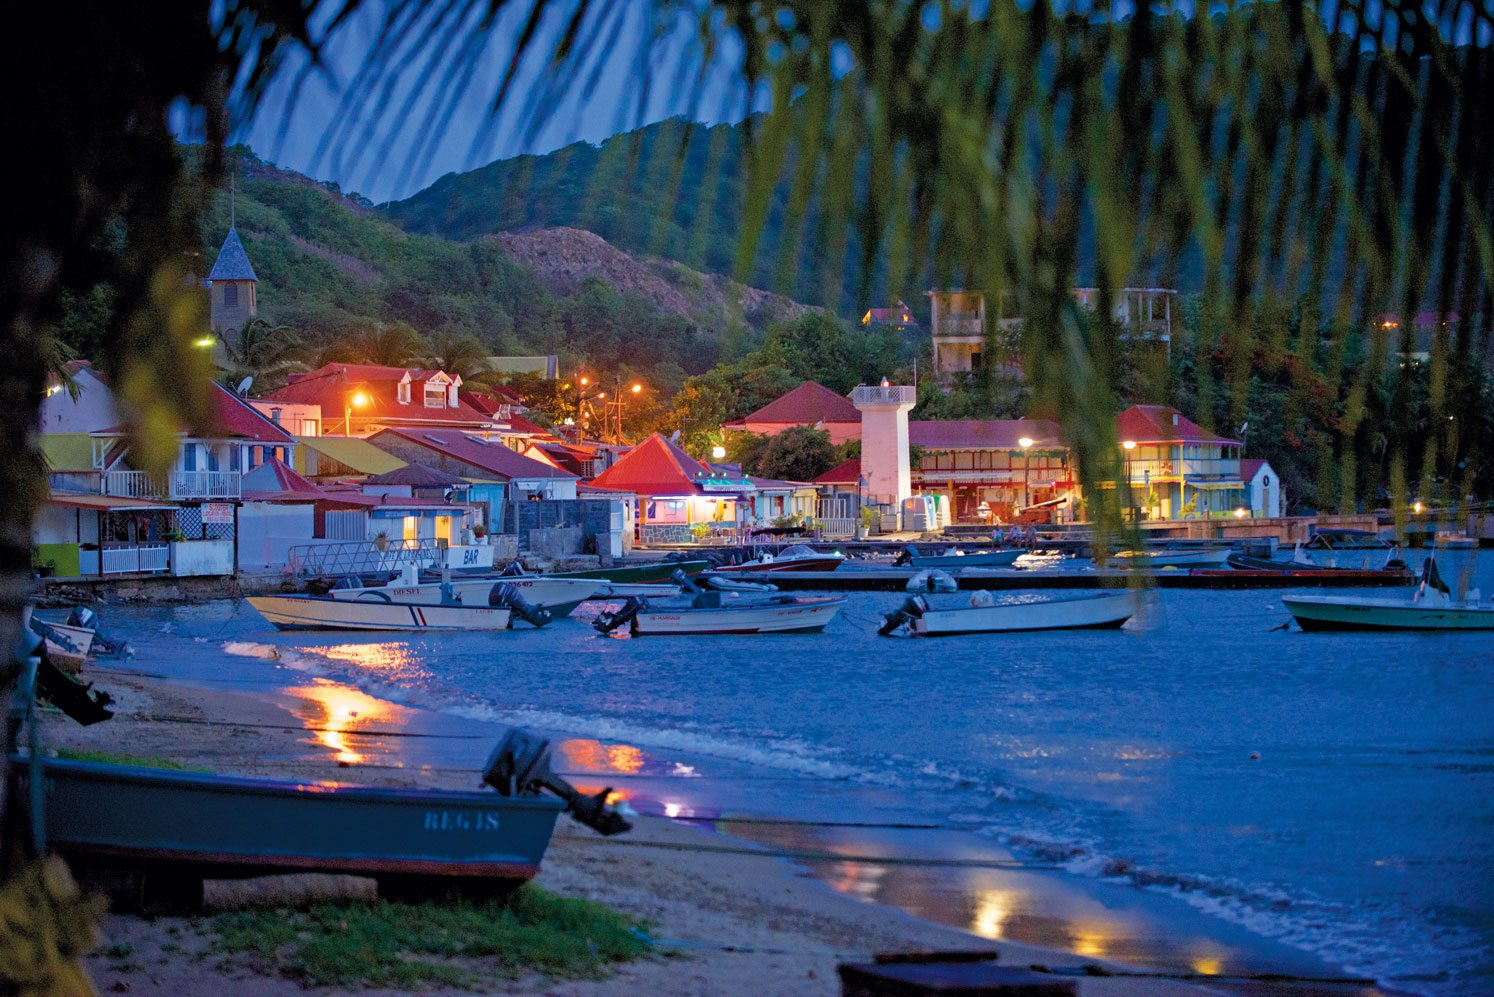 Les Saintes by night. Courtesy of Guadeloupe Islands Tourist Board